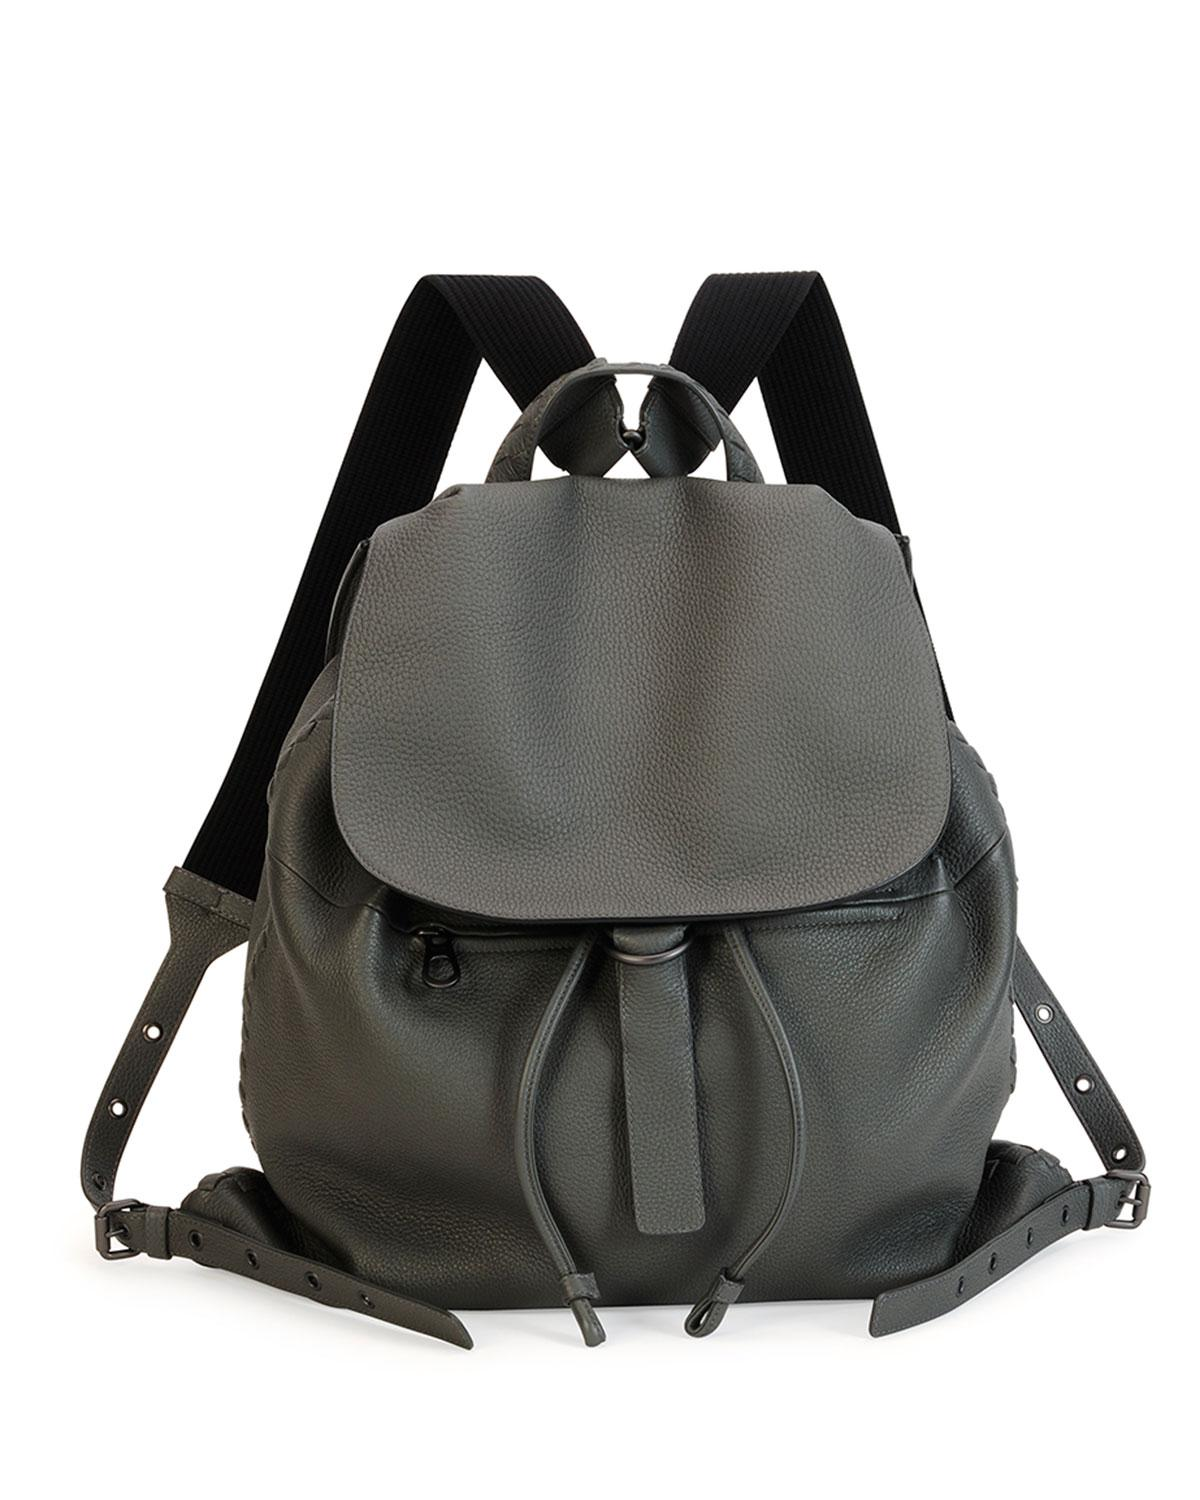 201bb2172d Lyst - Bottega Veneta Black Woven Backpack in Black for Men